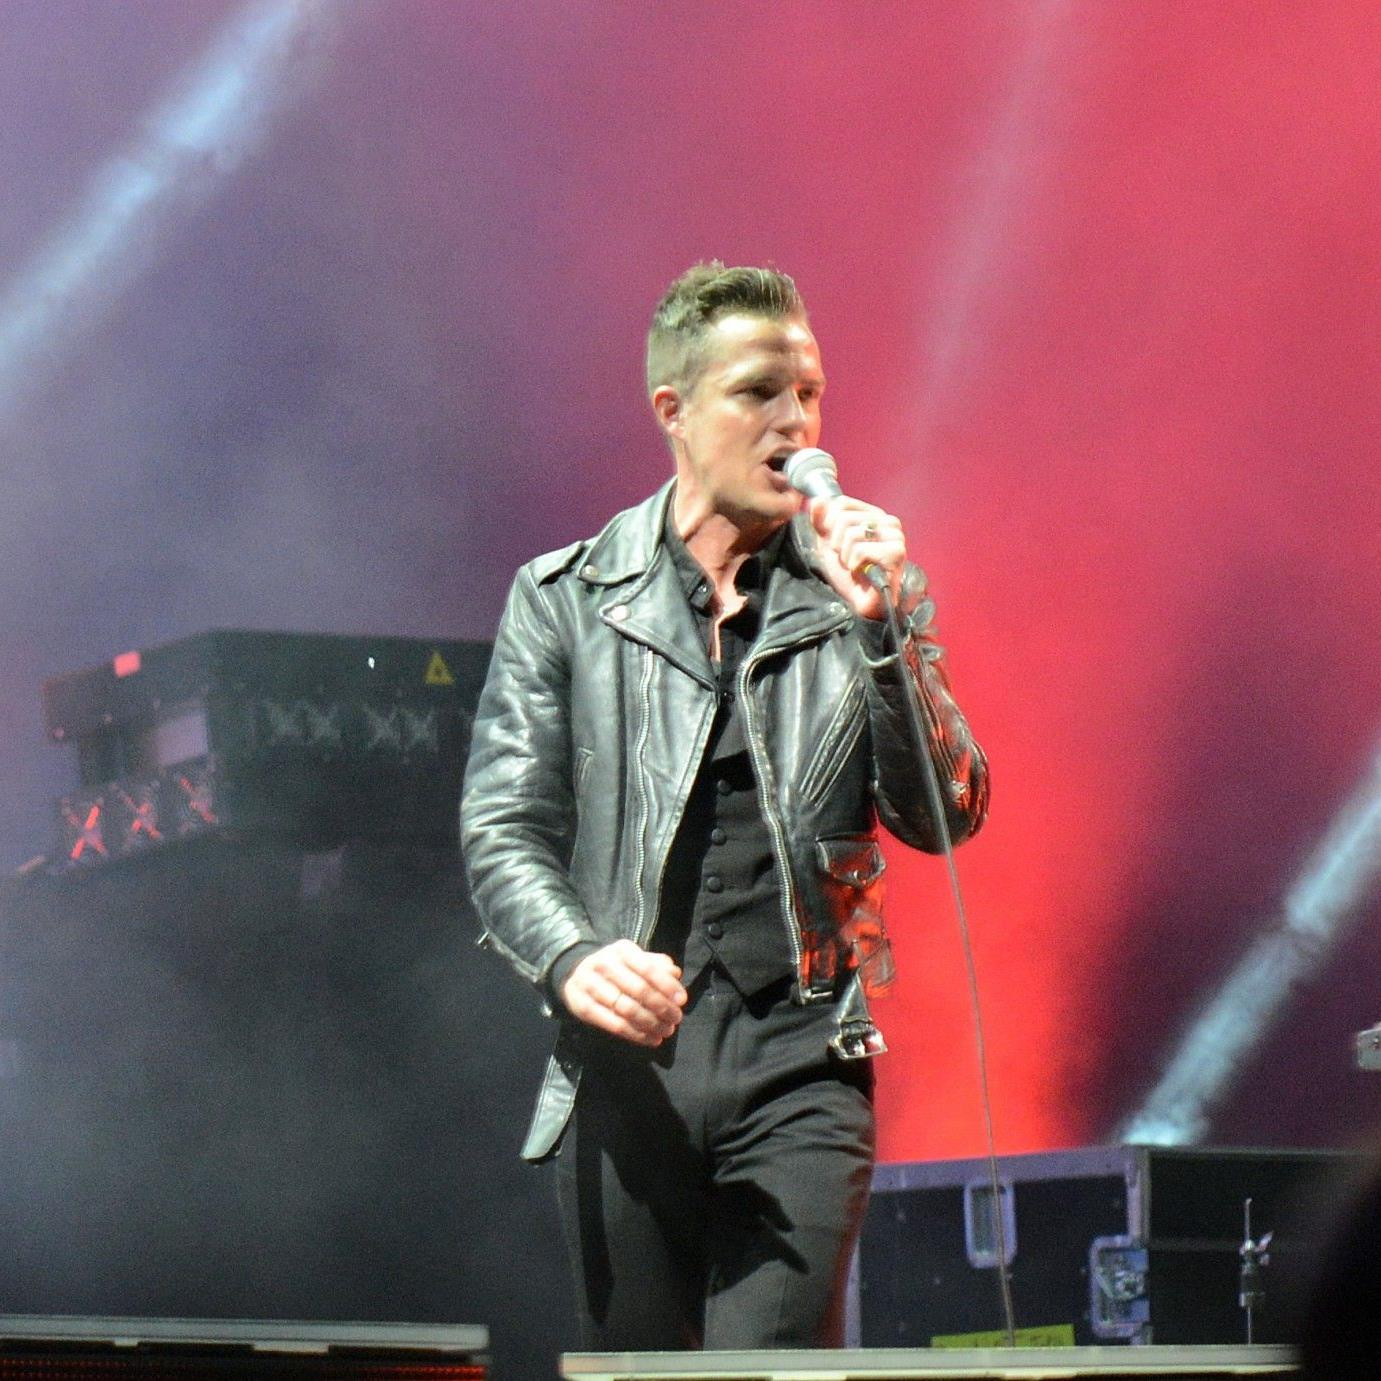 The Killers waren die Headliner am Warm Up-Day am Frequency Festival 2012